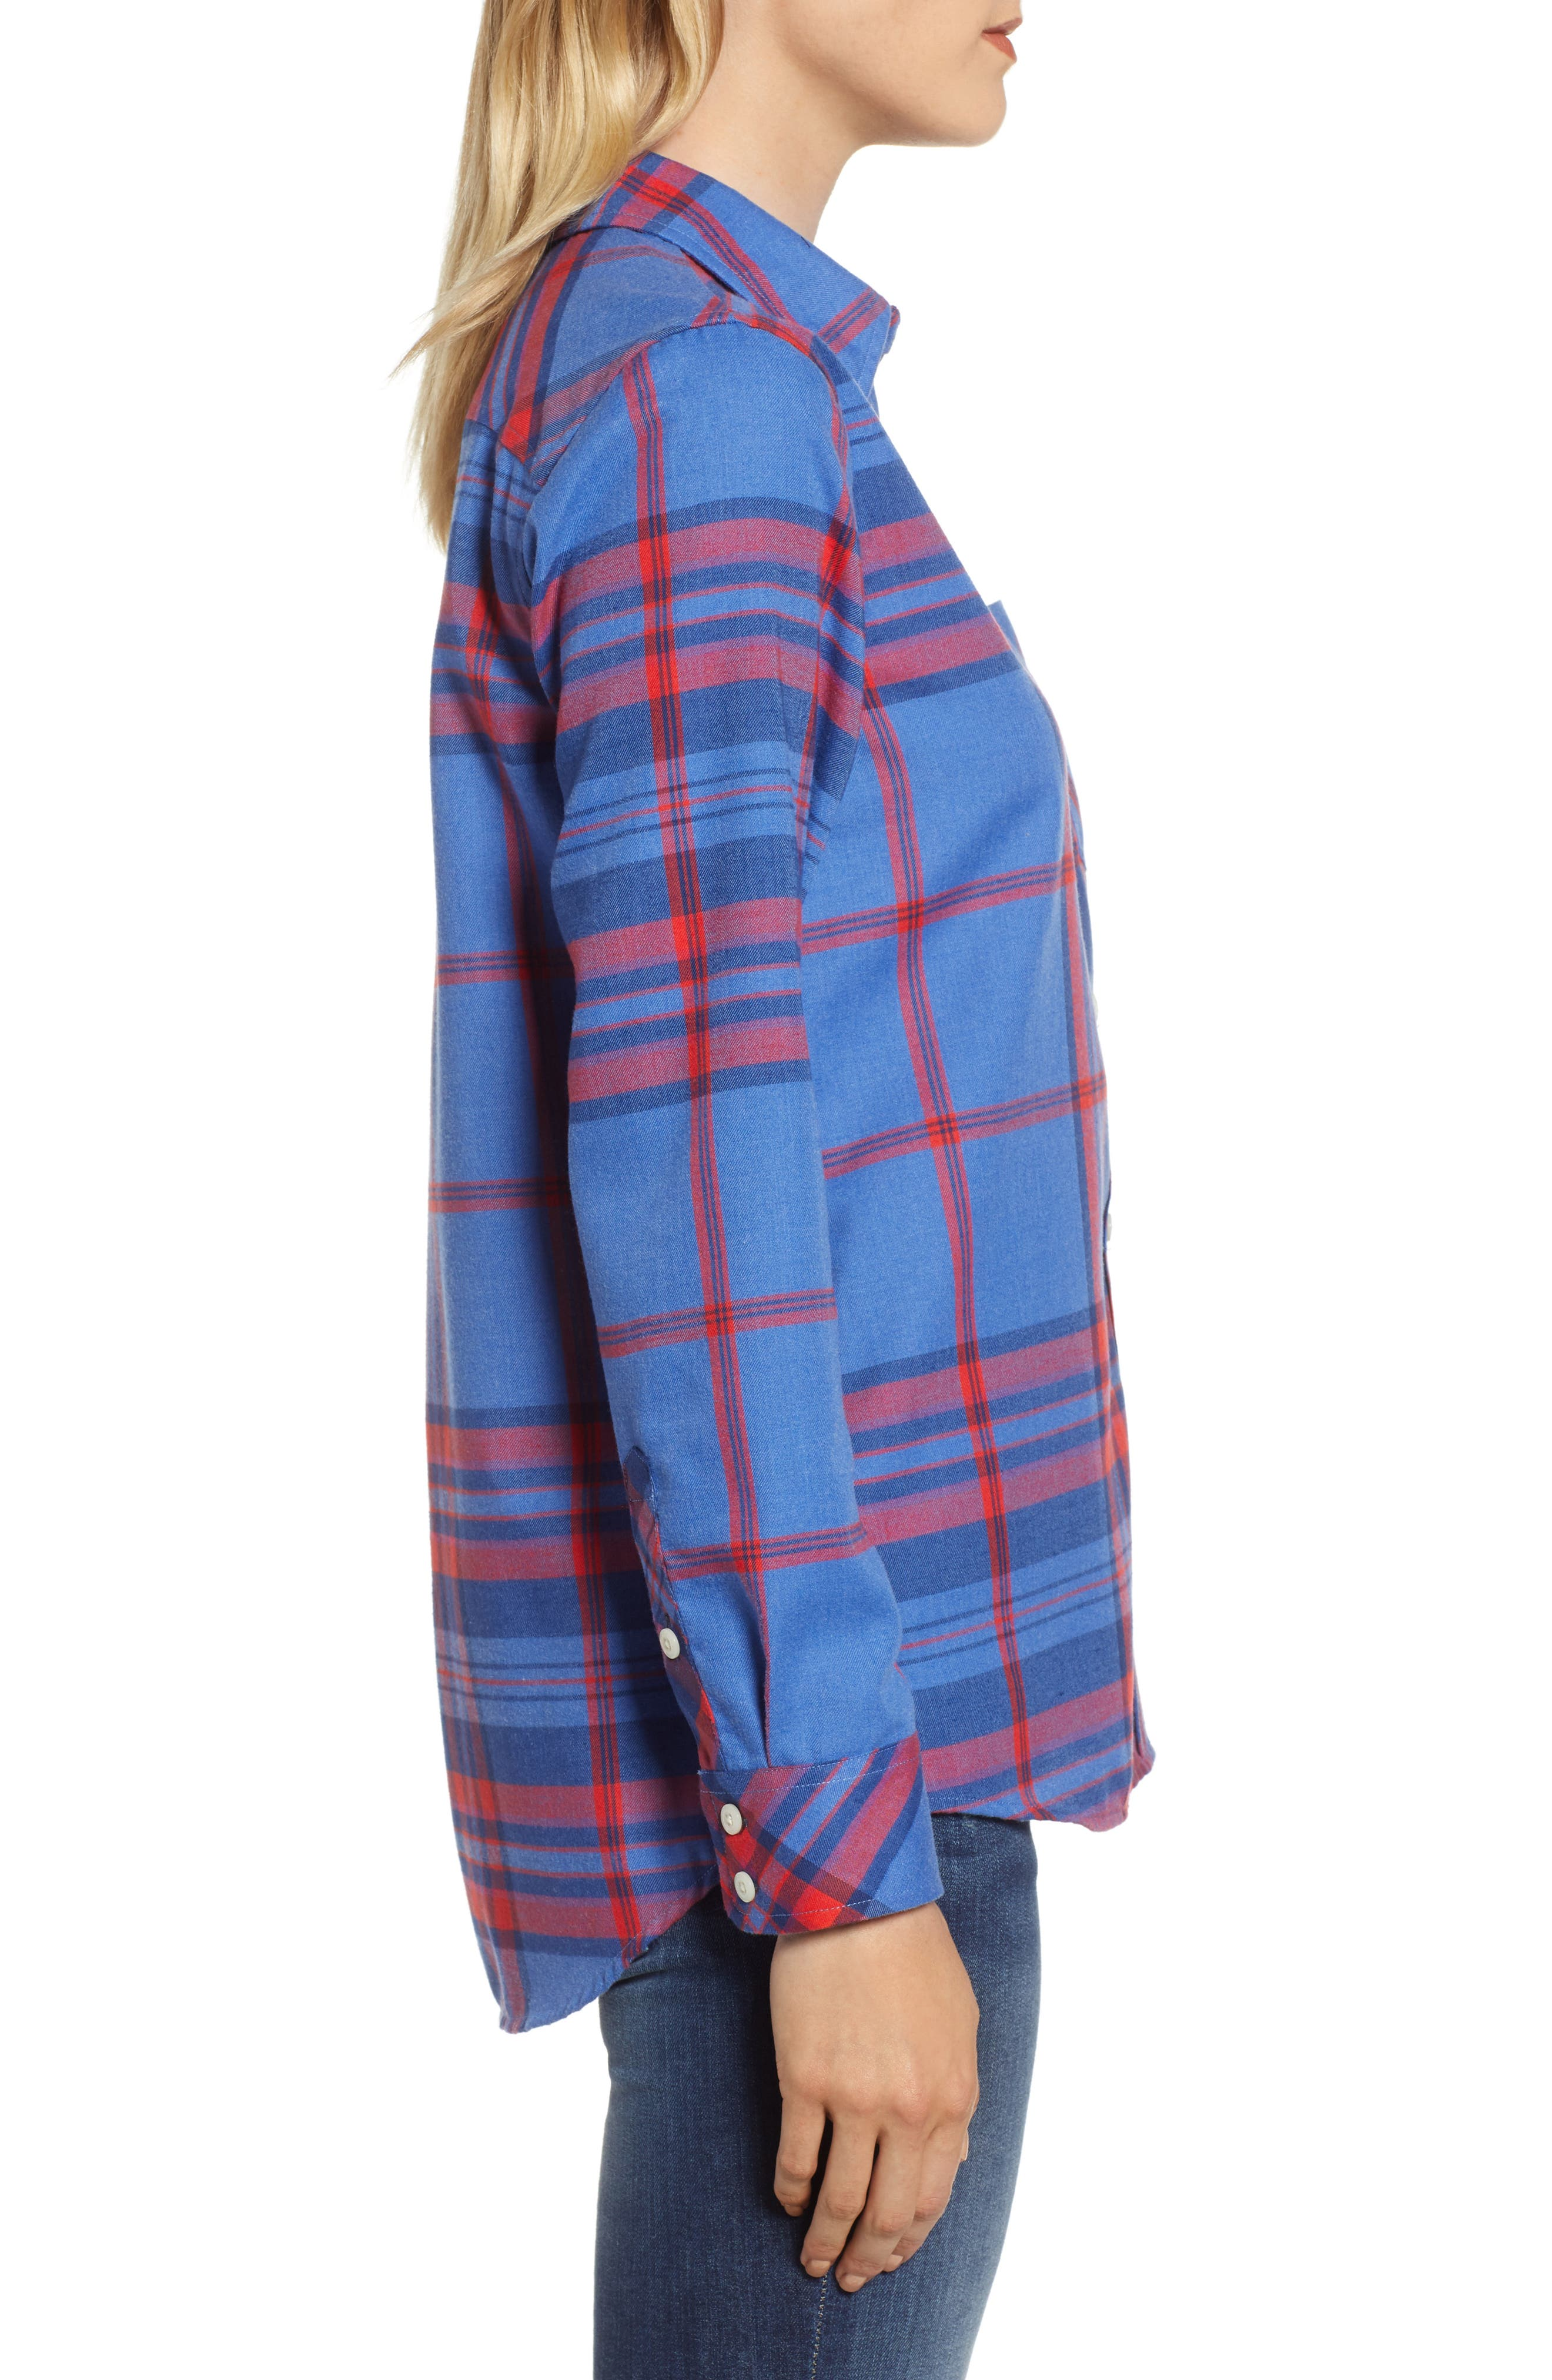 Northern Plaid Performance Flannel Shirt,                             Alternate thumbnail 3, color,                             DAZZLING BLUE